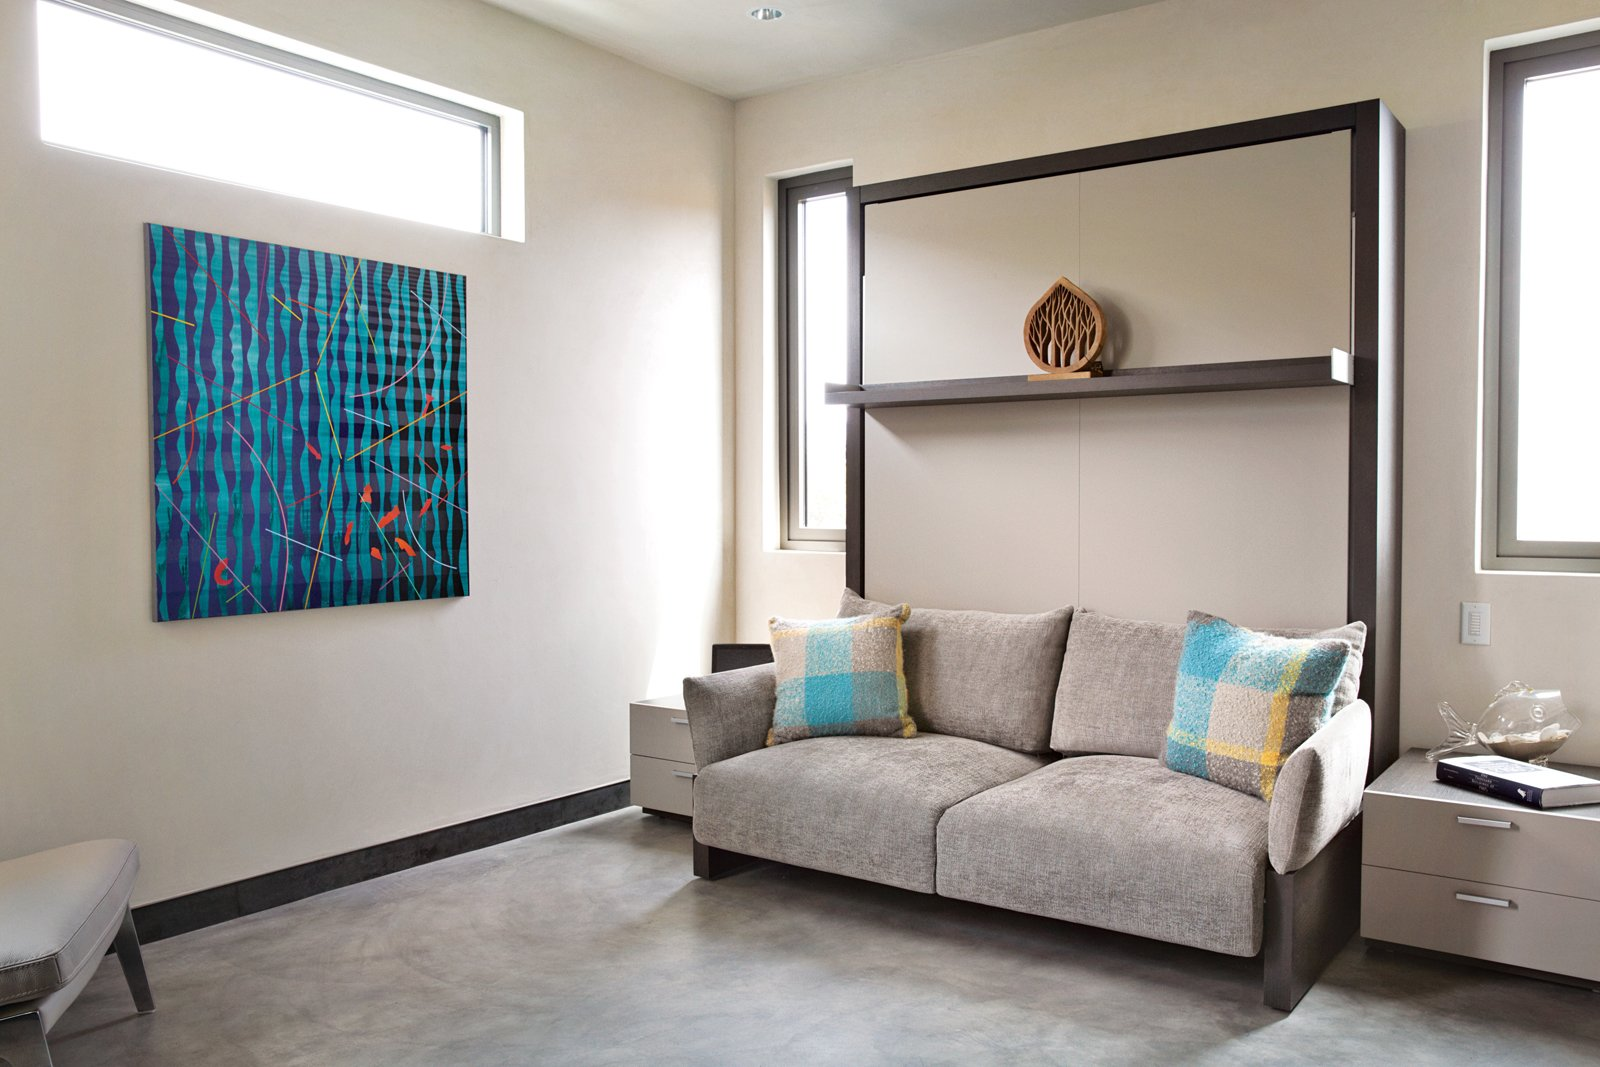 In a bedroom that's used for guests, Robin demonstrates a foldable Murphy bed system, the Nuovoliola '10 from Clei/Resource Furniture. The artwork, Orange Fish, is by Pablo Campos.  Photo 6 of 18 in Actor Bryan Cranston's Green Beach House Renovation